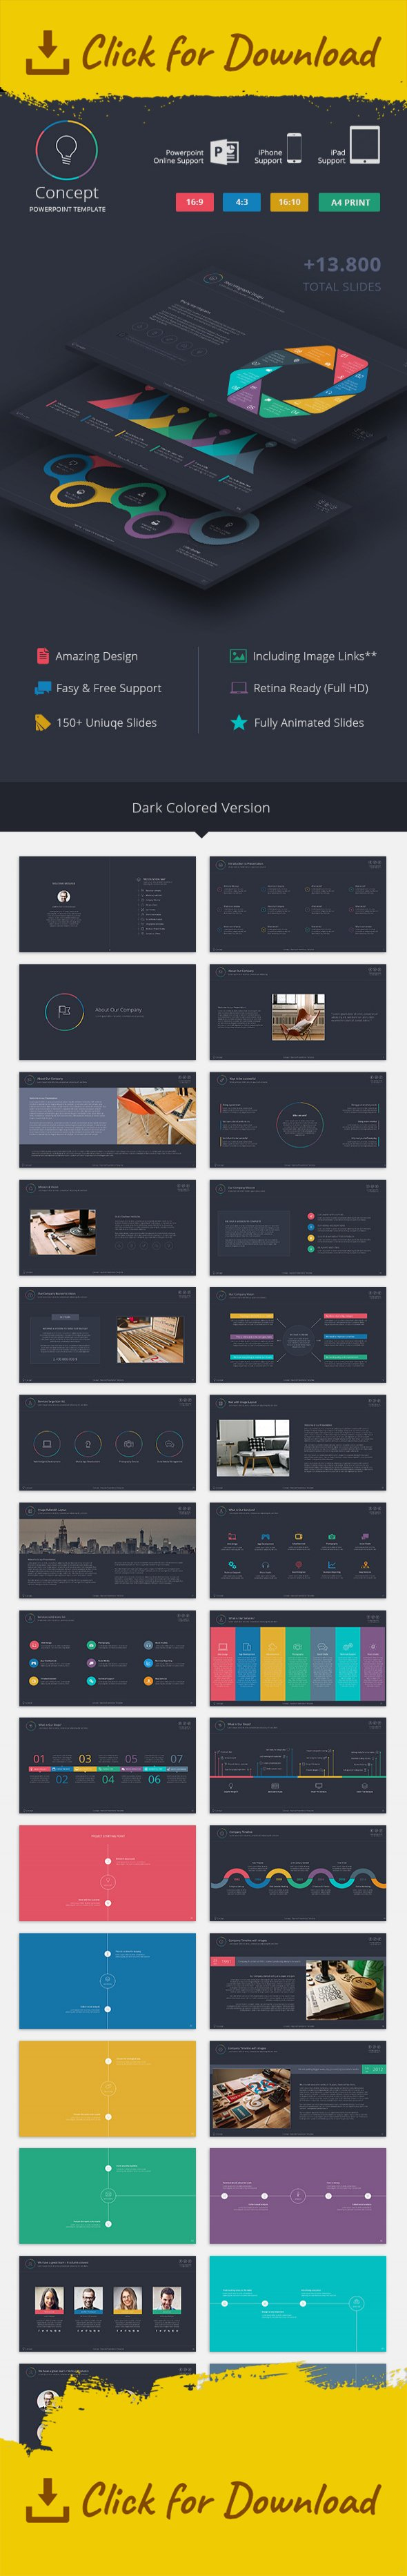 Concept powerpoint template windows powerpoint business analysis business powerpoint template business powerpoint theme business presentation template colorful toneelgroepblik Image collections